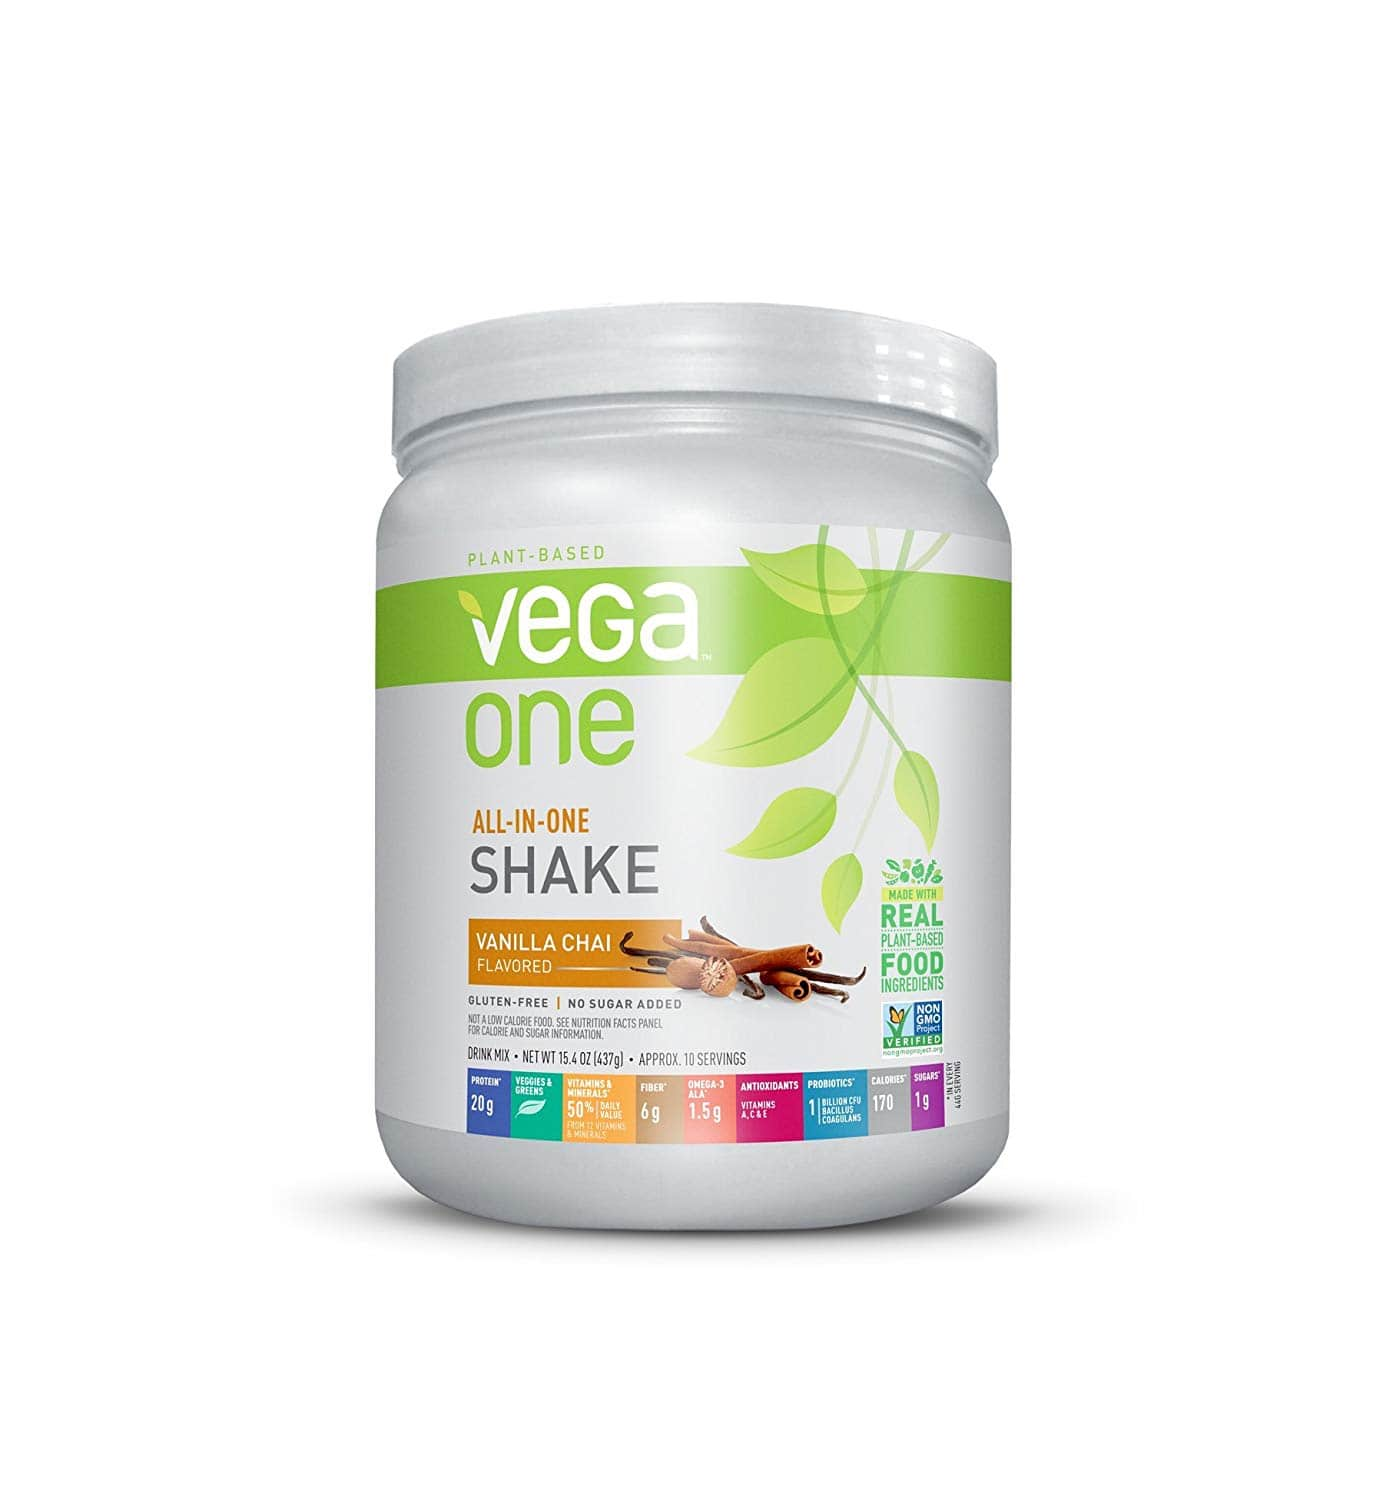 10-servings 15.4-oz Vega One All-In-One Nutritional Shake Vanilla Chai $18.86 + Free Shipping via S&S